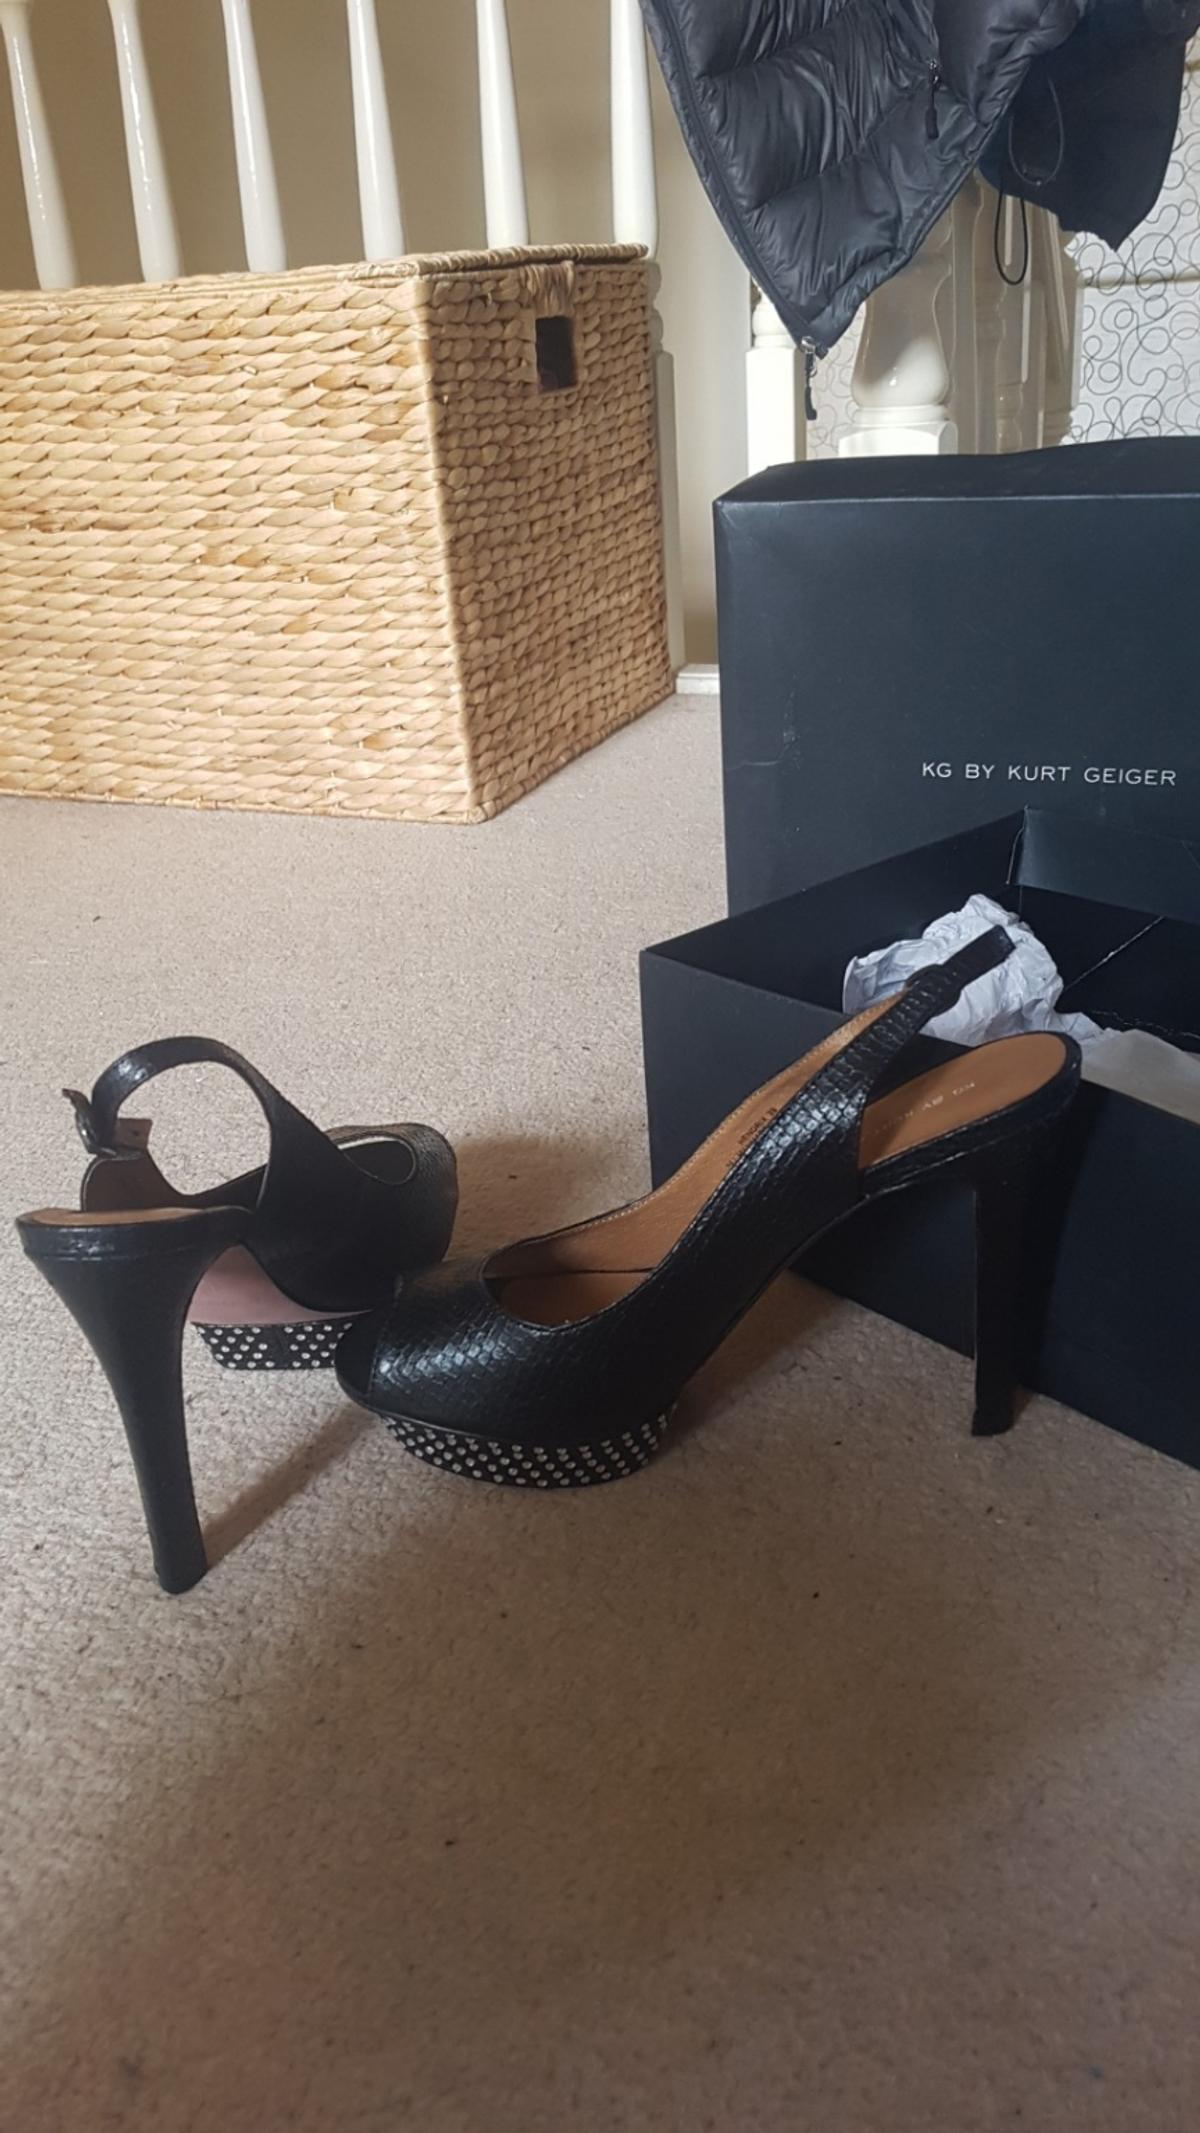 b72716ed958 KG by Kurt Geiger high heels with diamantes in Bassetlaw for £25.00 ...